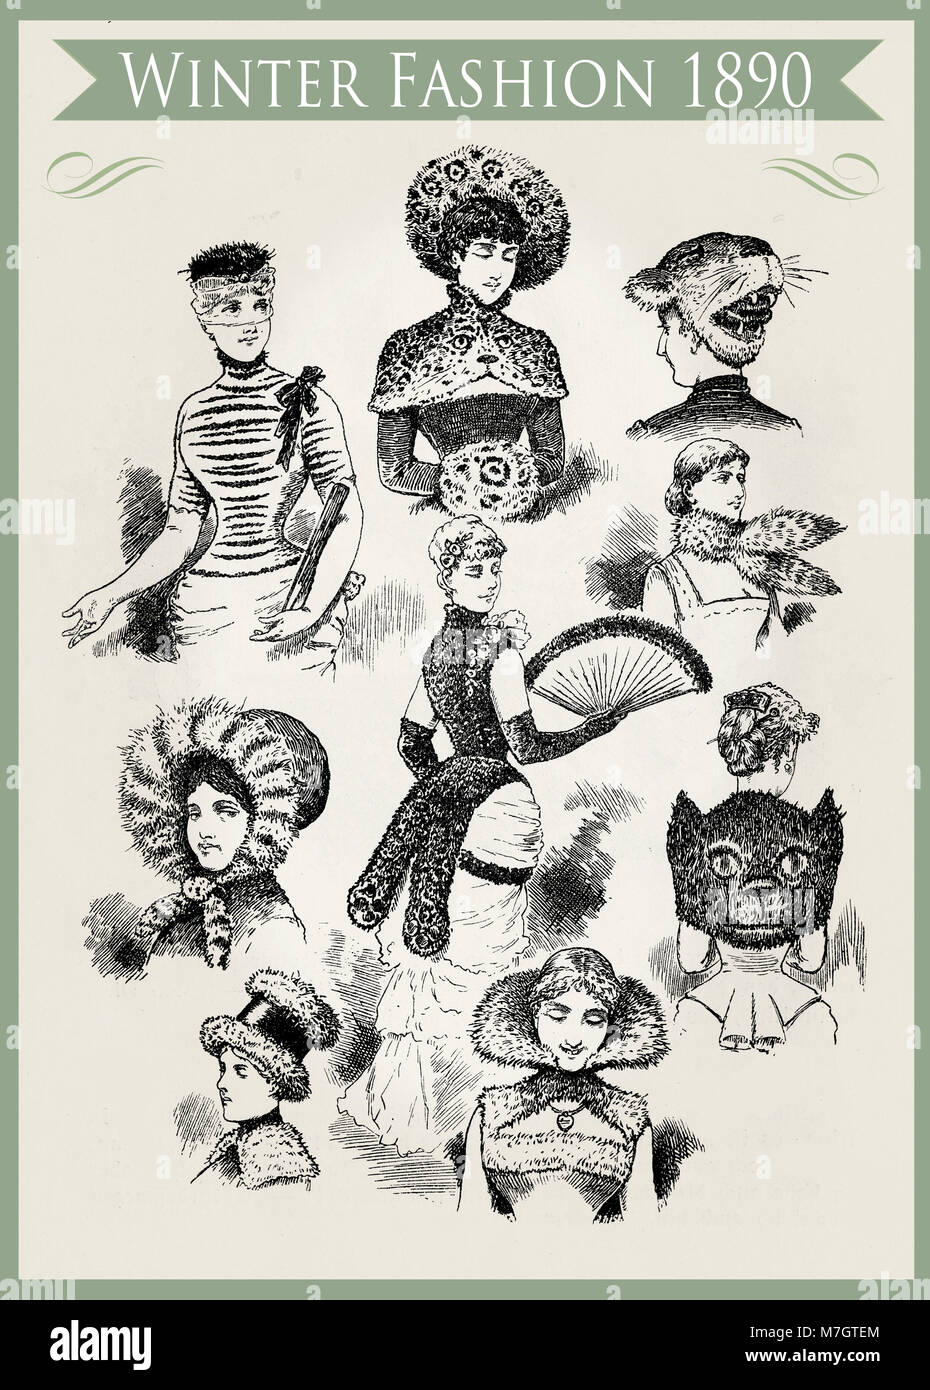 Fashion 1890 caricature and fun:  unpredictable winter outfits and headdresses with fur, ready for a party - Stock Image